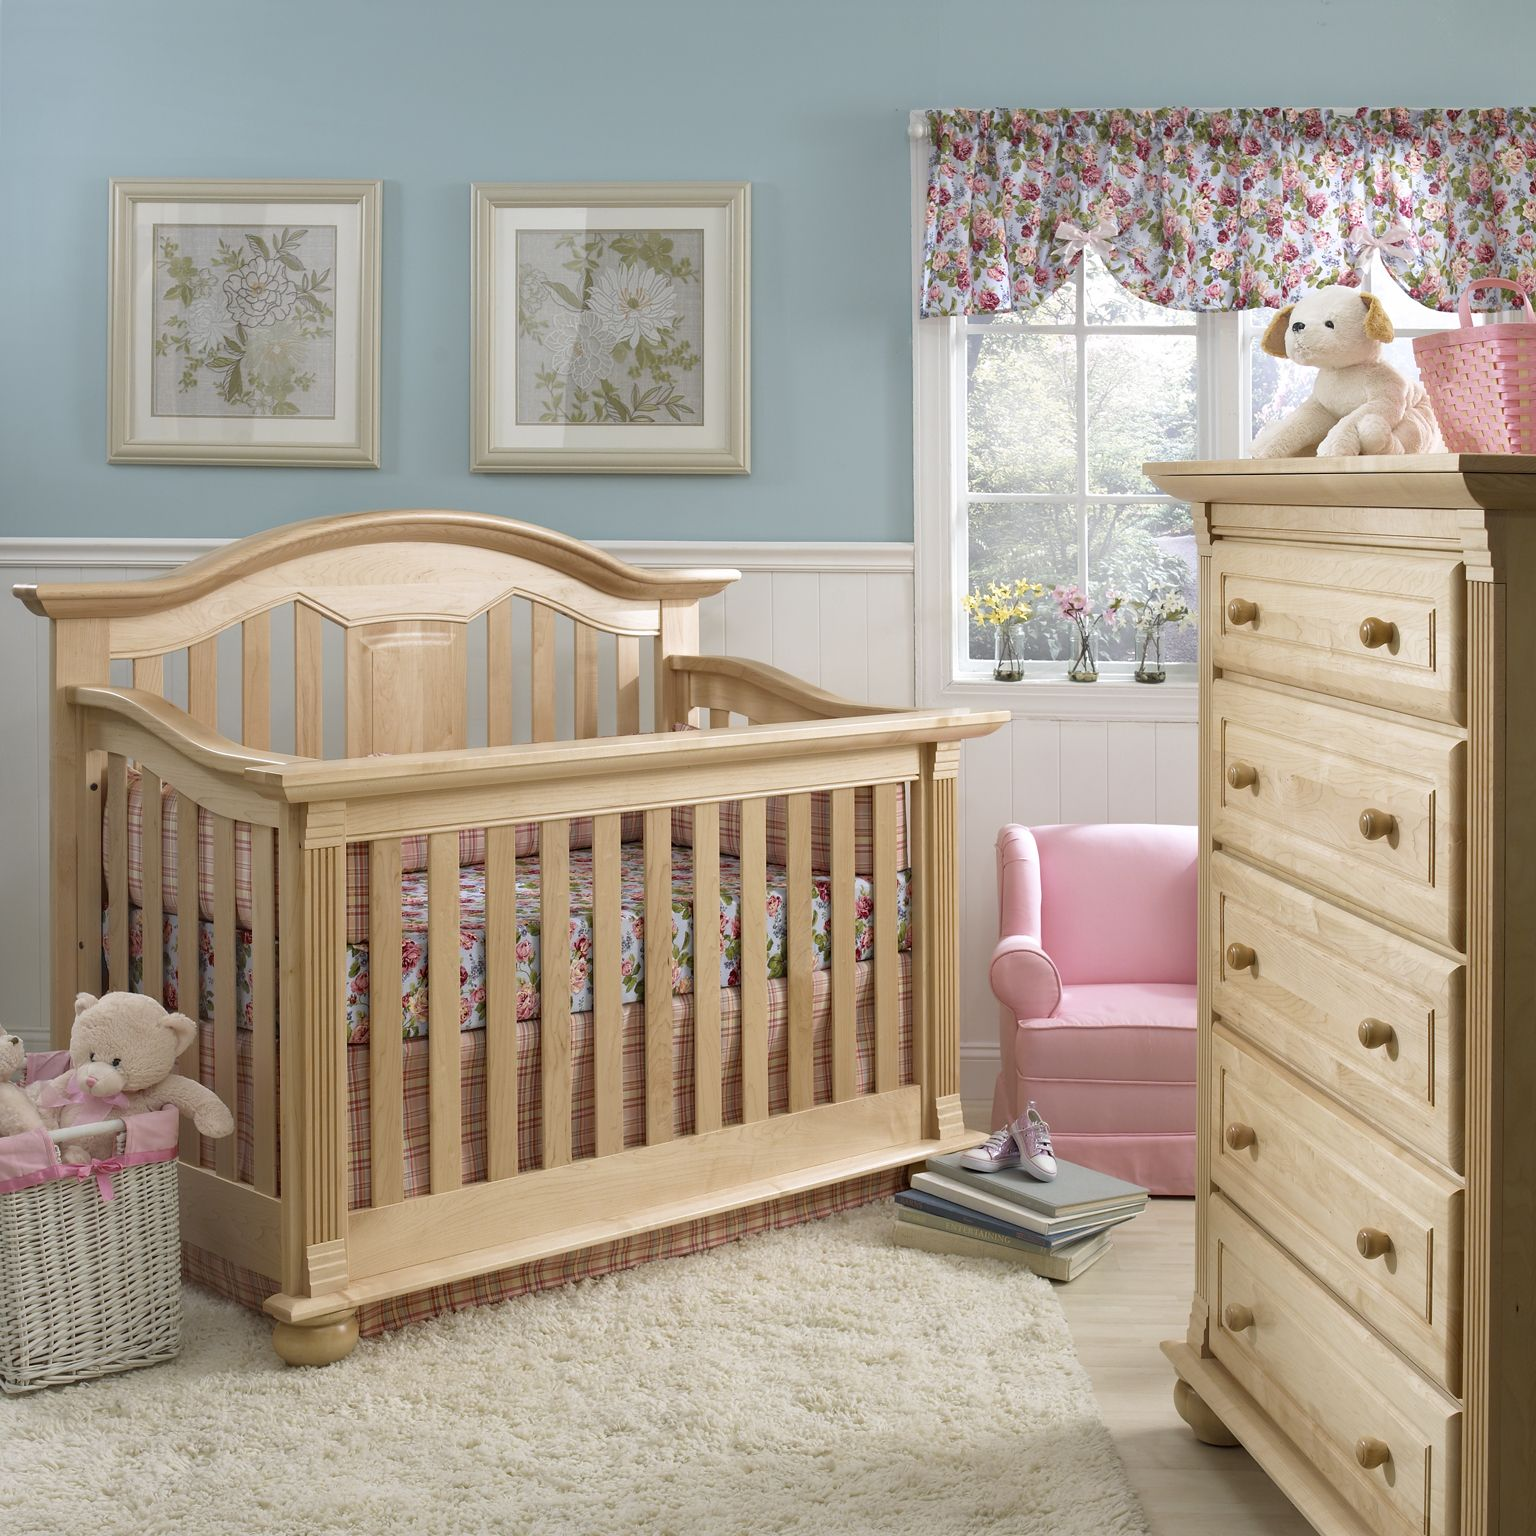 dresser crib jenny gallery lind cribs furniture of target beds unfinished davinci baby bedsr awesome toddler and convertible at wooden